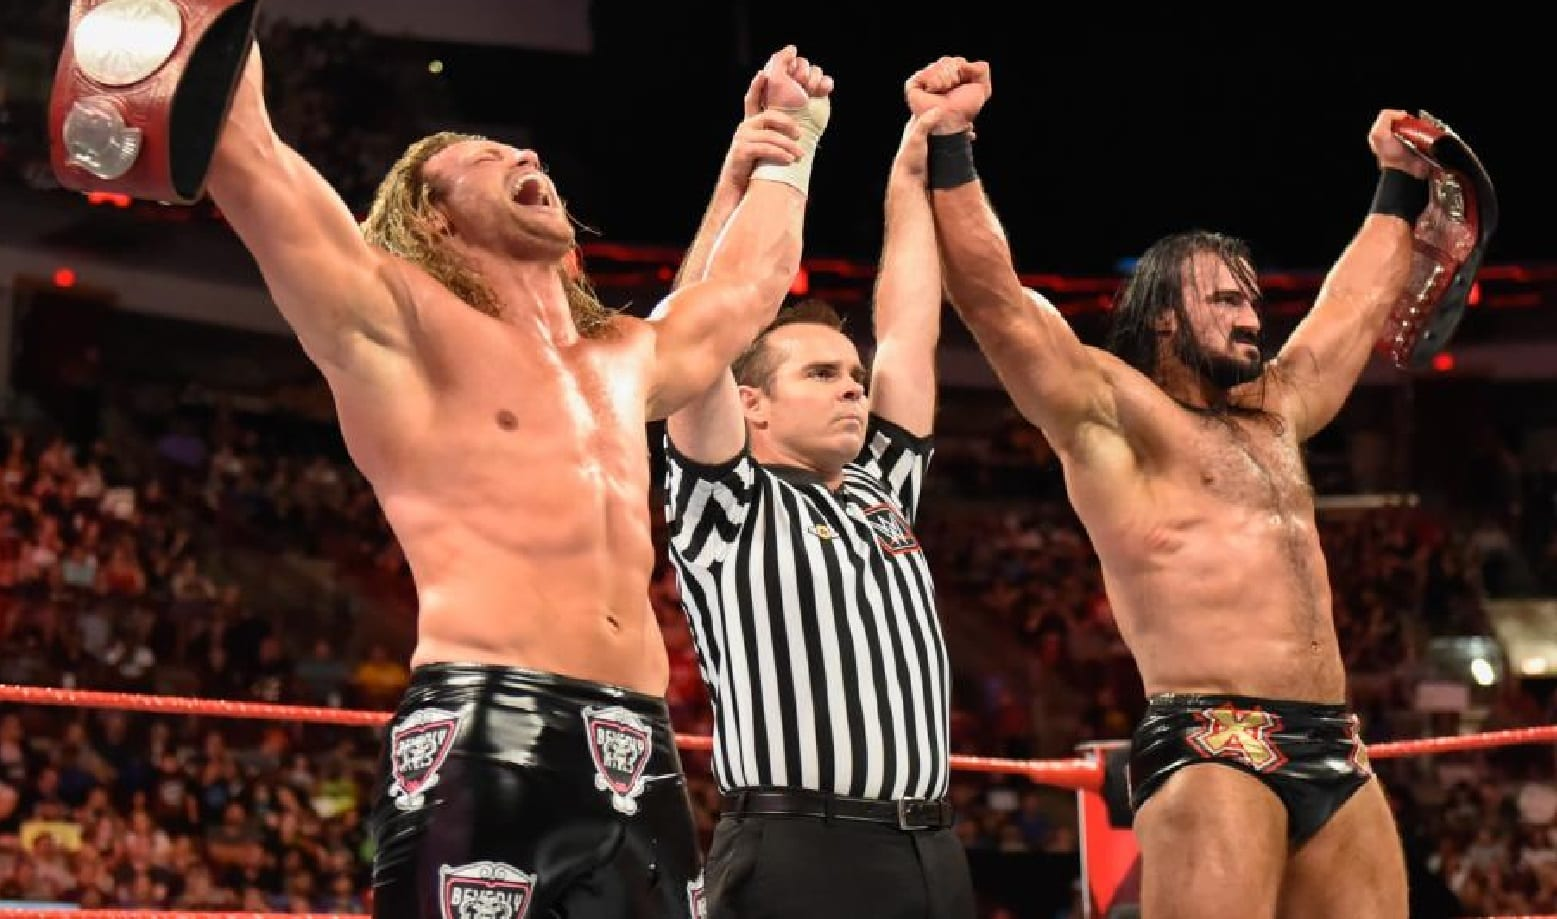 dolph and drew title win